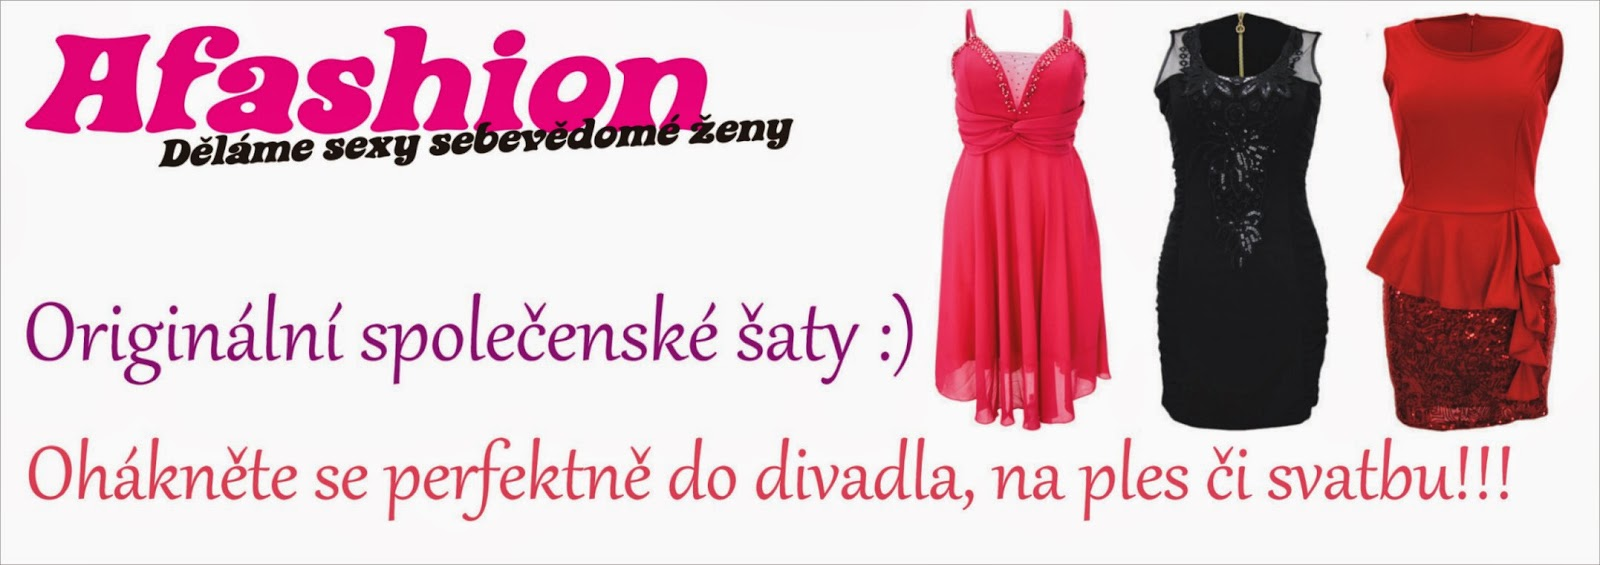 http://afashion.cz/index.php?route=product/category&path=62